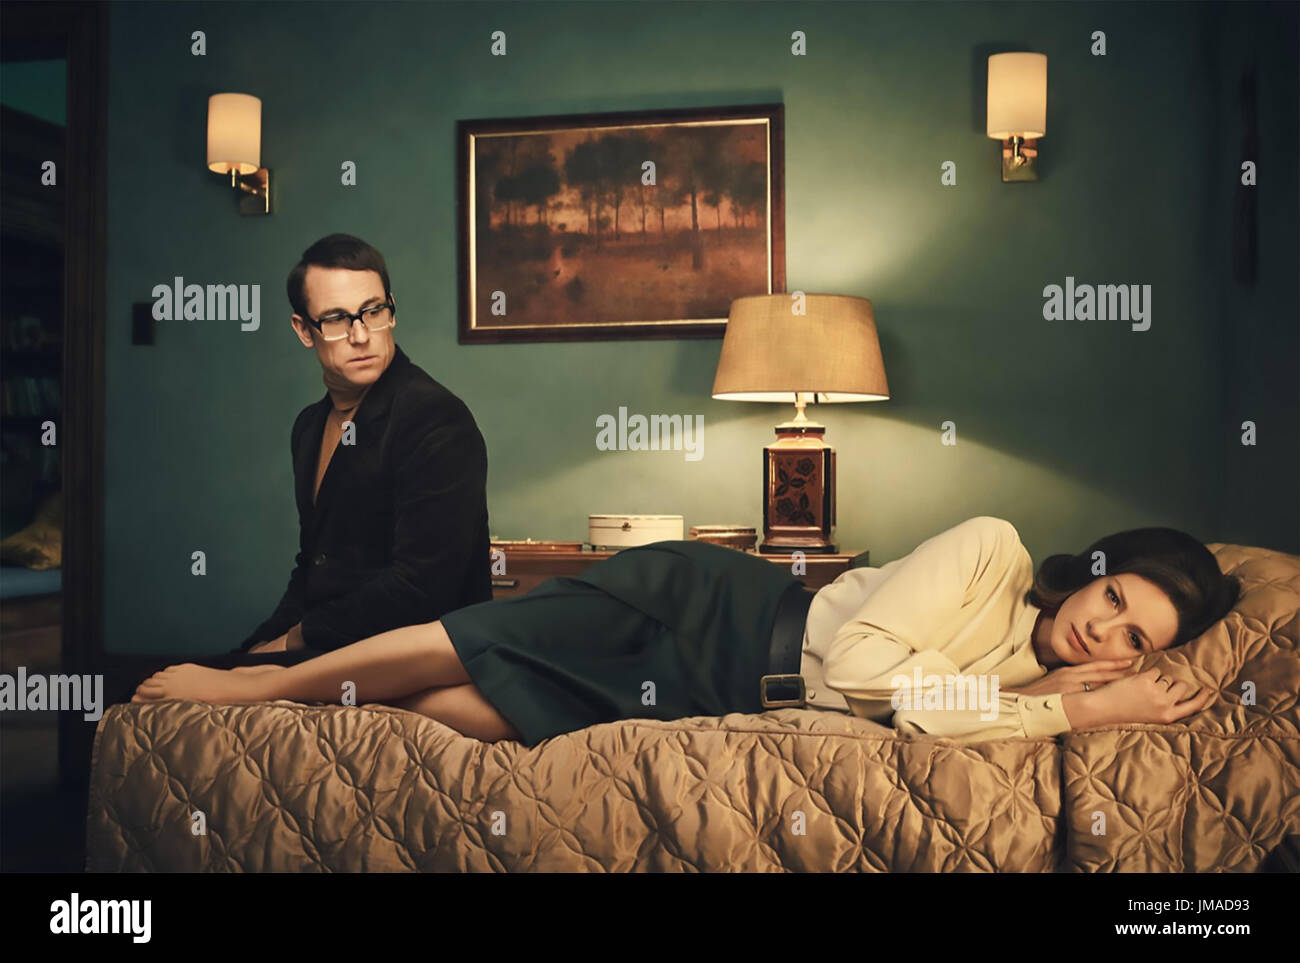 OUTLANDER Tall Ship TV series 2014> with Caitriona Balfe and Tobias Menzies - Stock Image